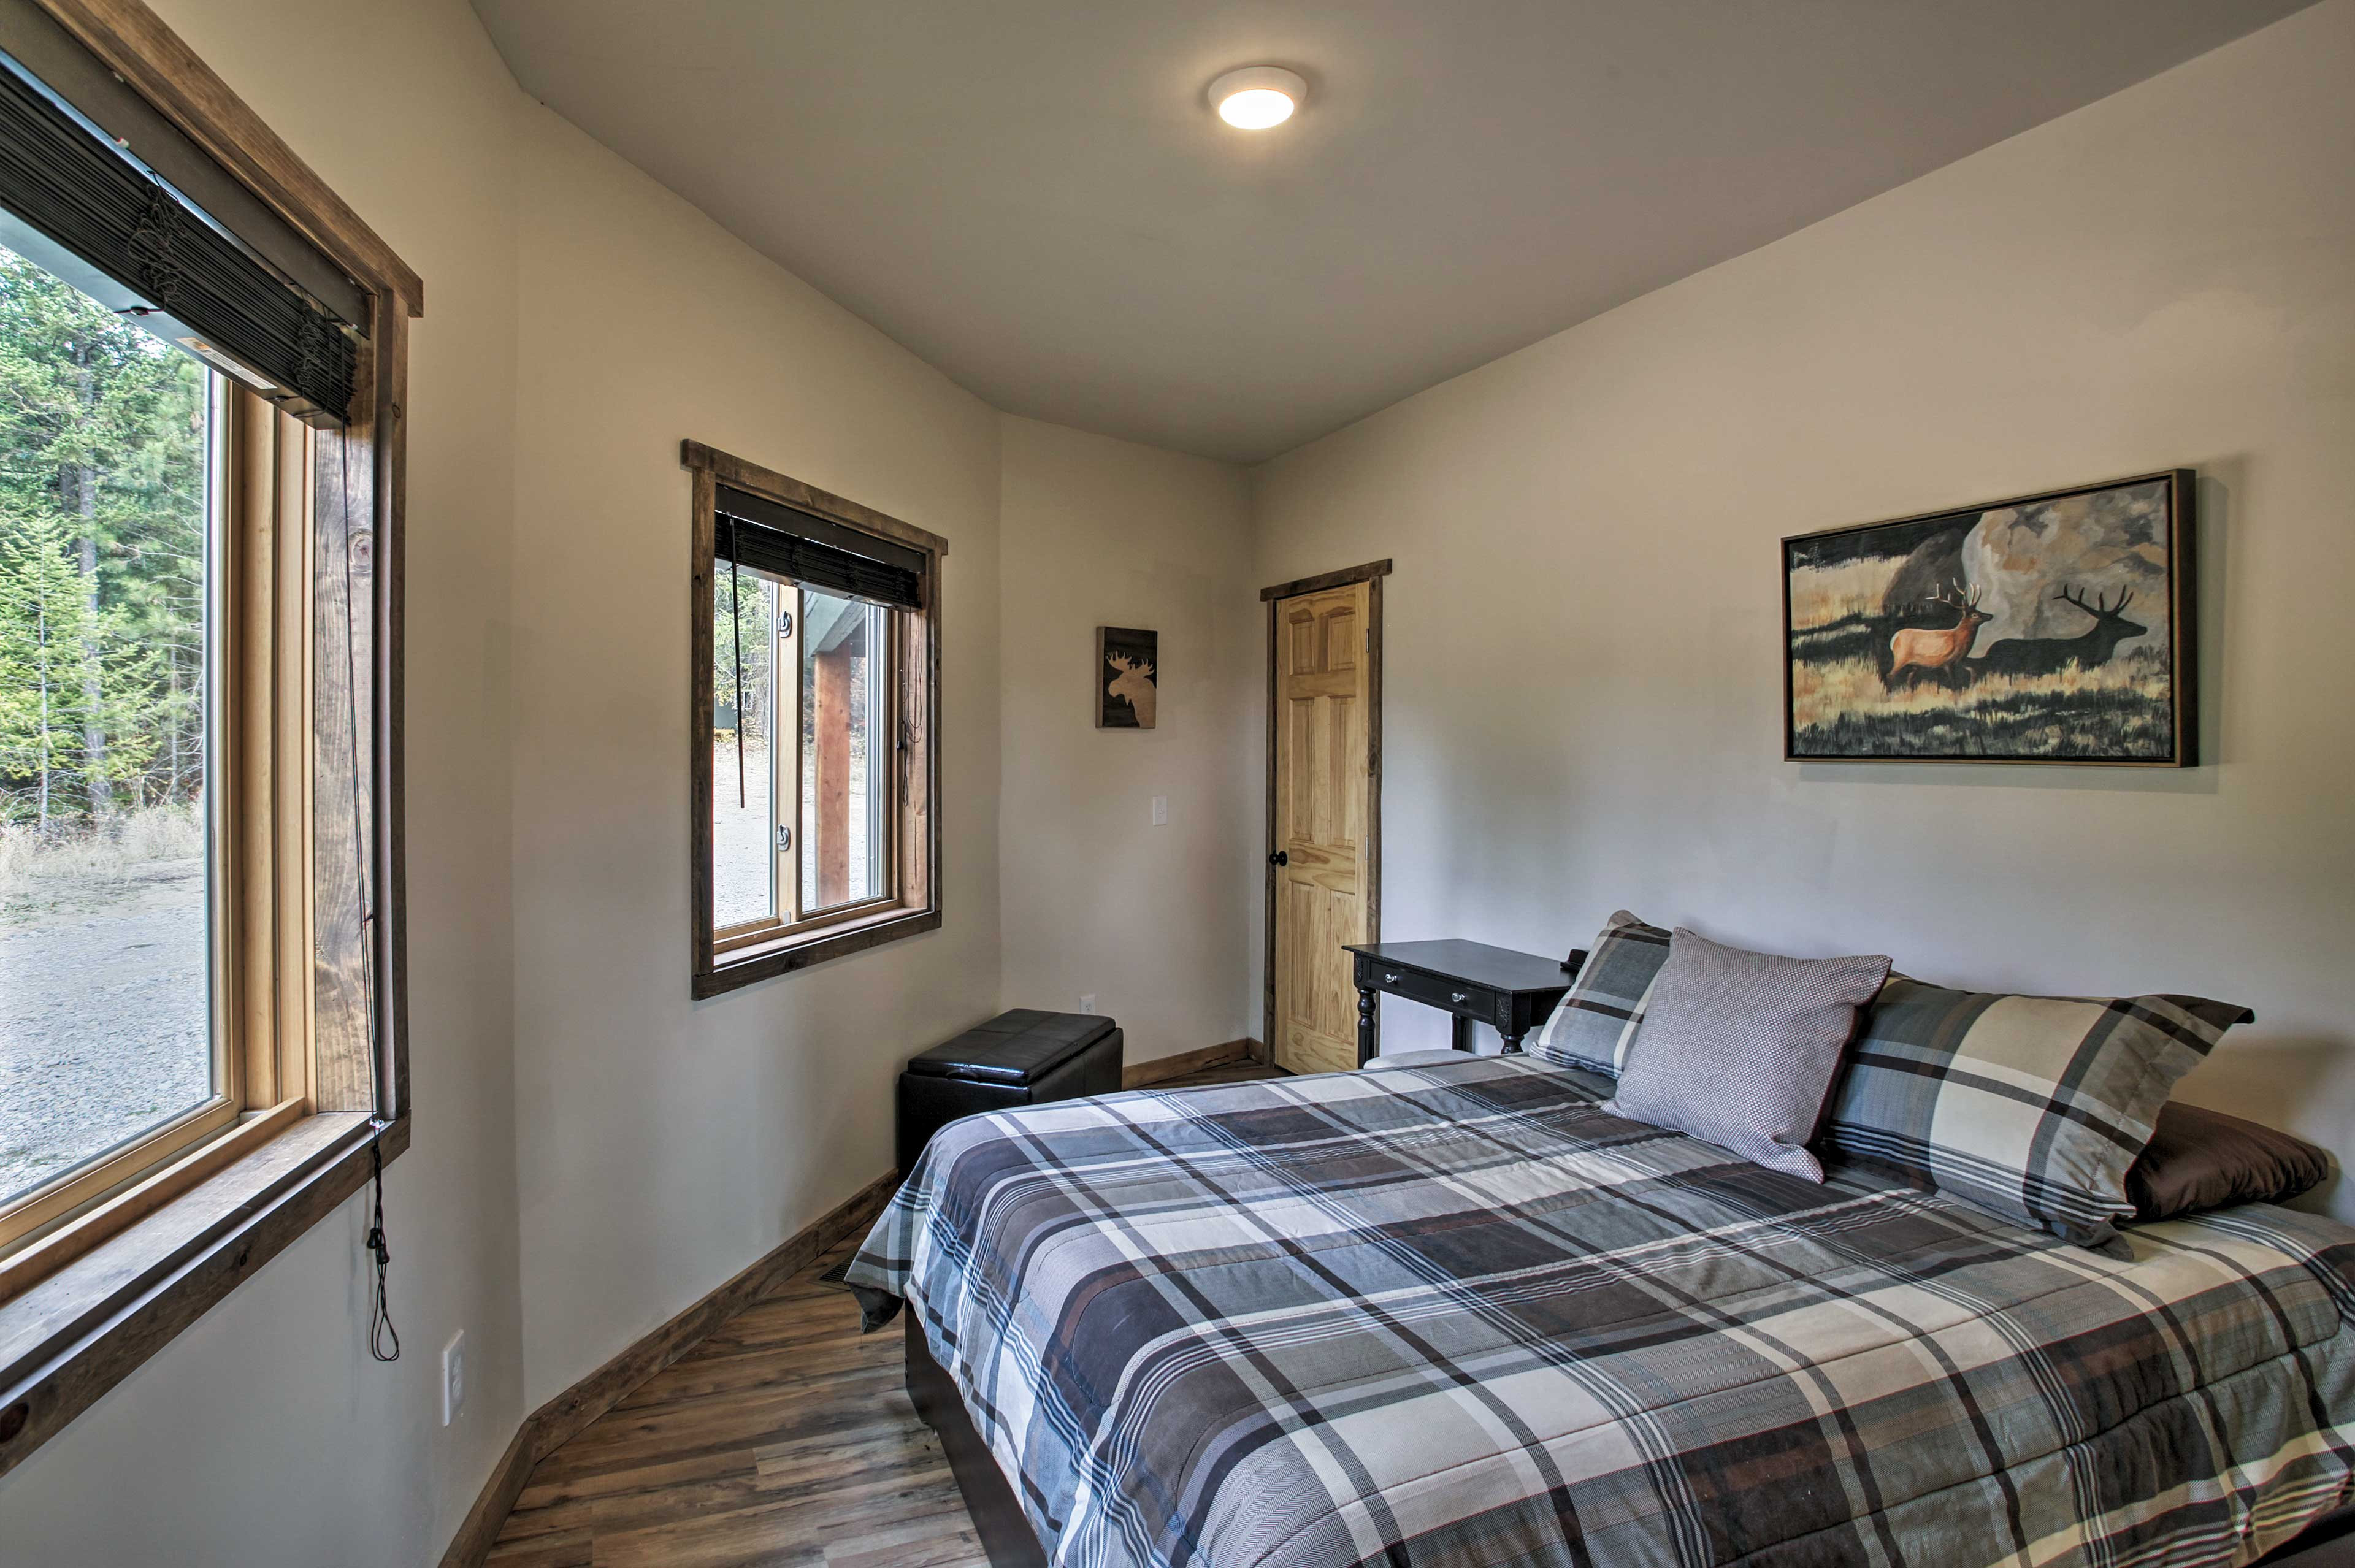 Guests are sure to sleep soundly in the second bedroom.